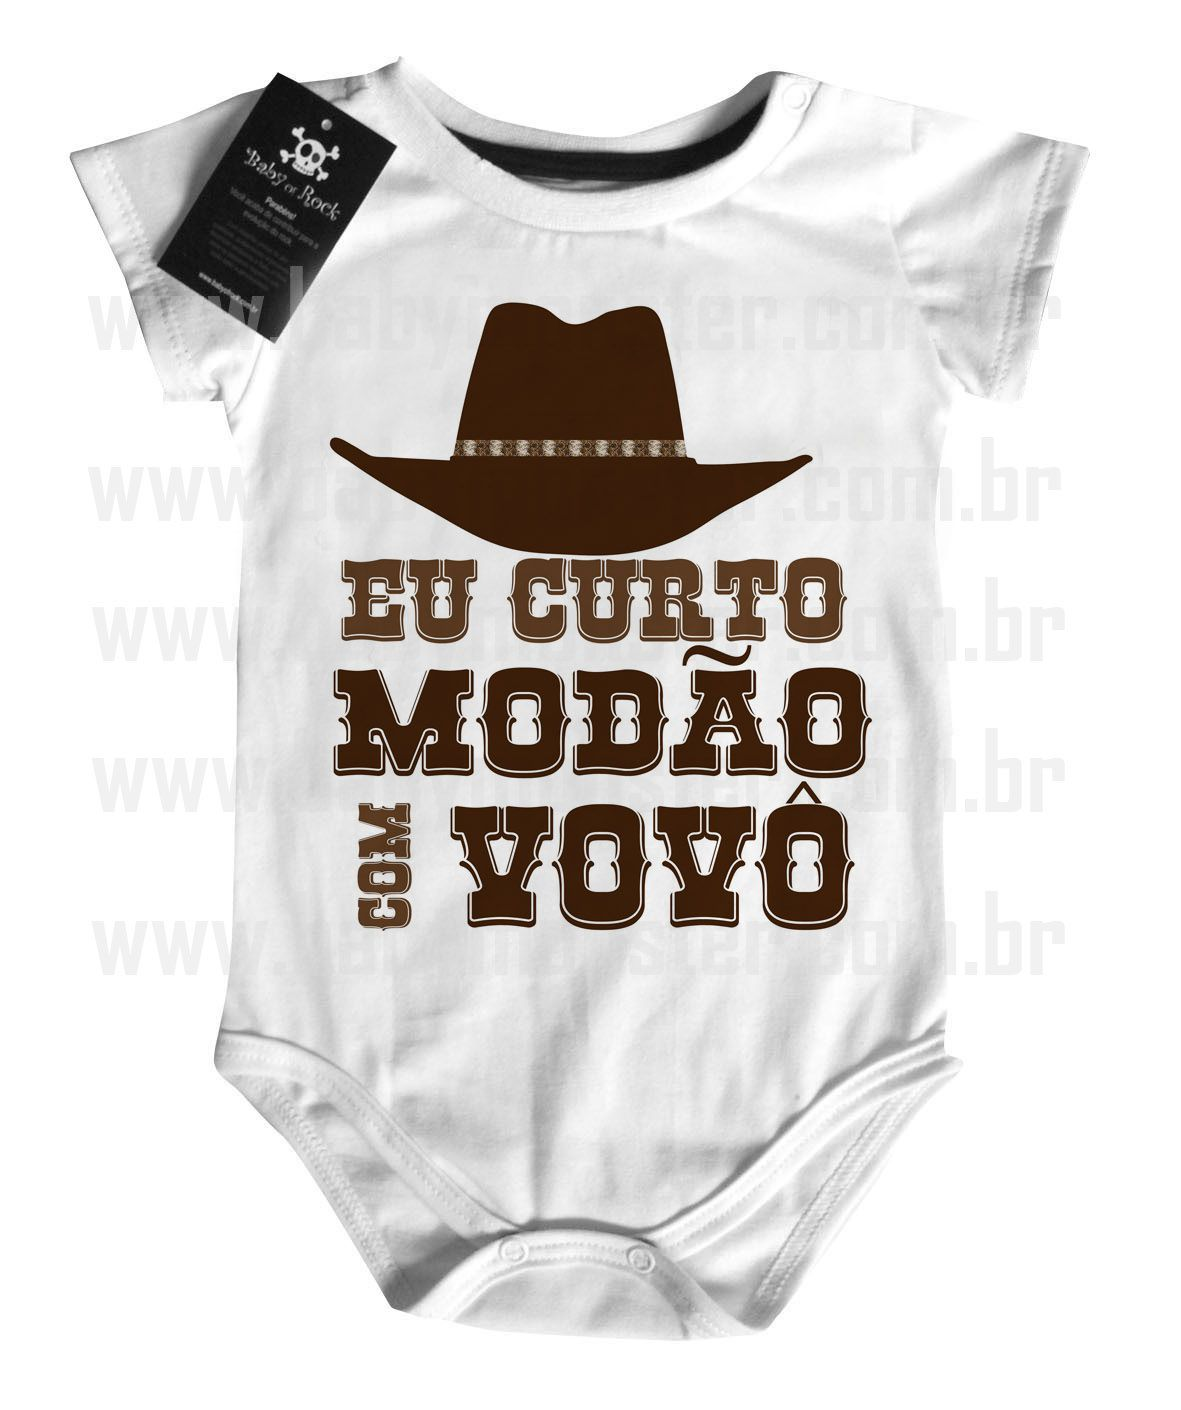 Body  Sertanejo Curto Modão com o Vovô- White  - Baby Monster S/A